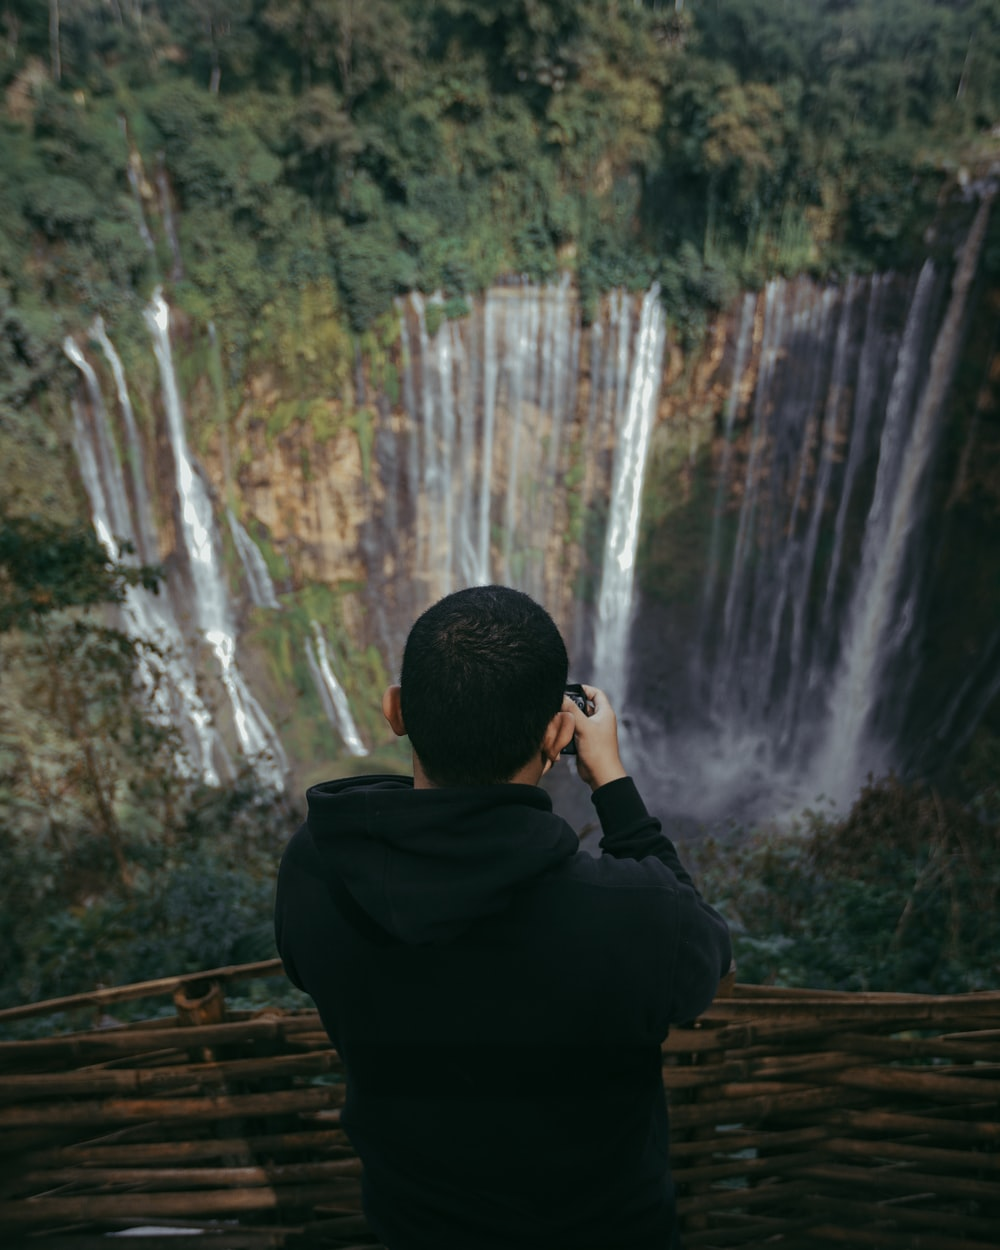 an holding camera capturing falls